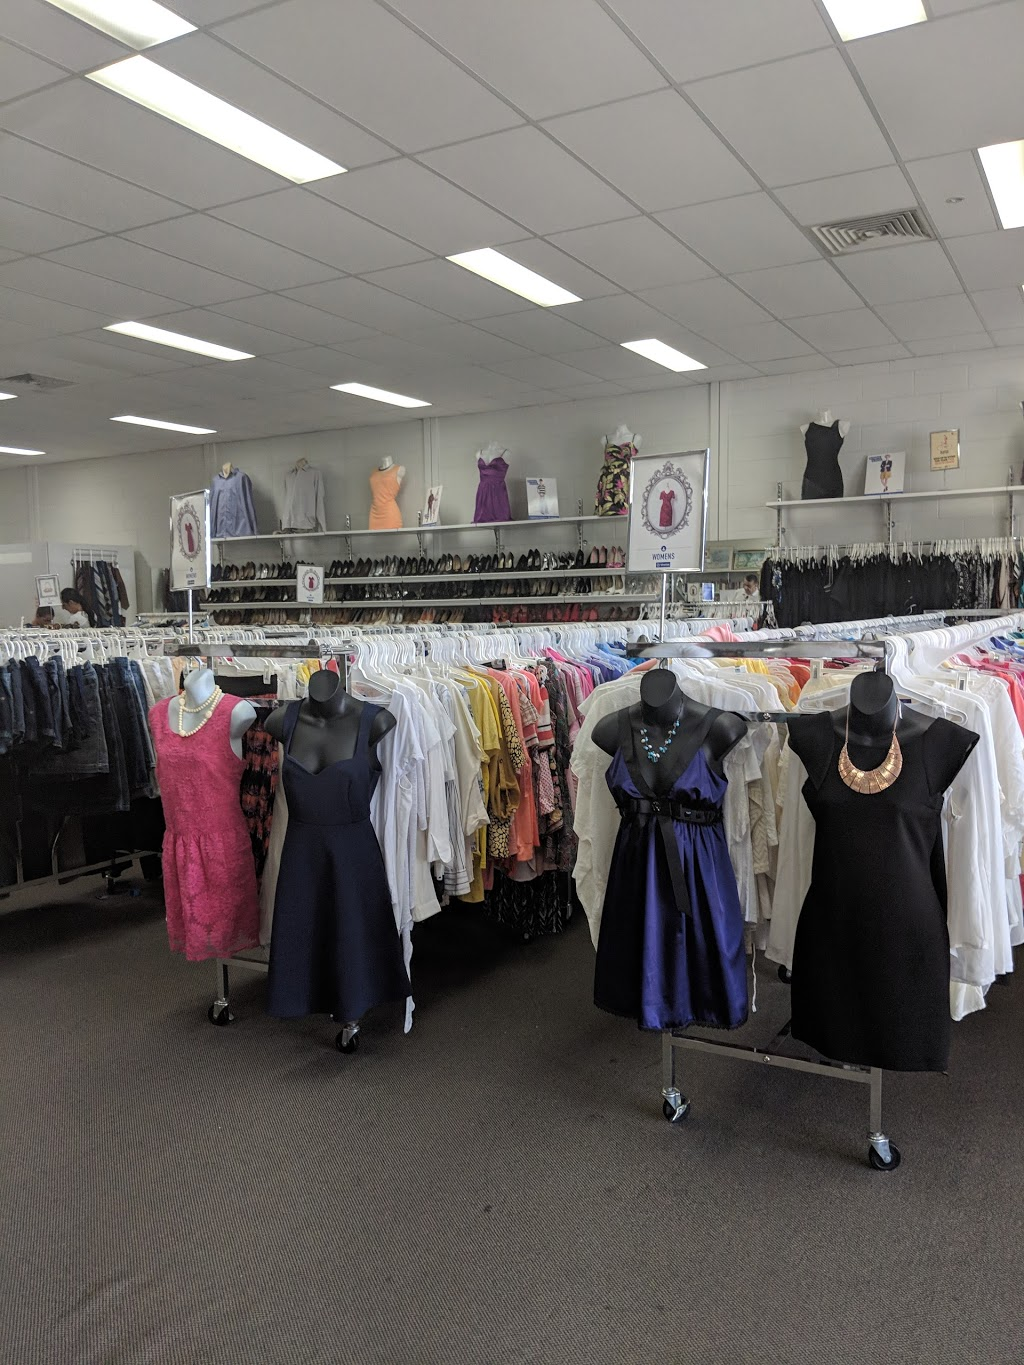 Vinnies | clothing store | Blacktown MegaCentre, C4/14 St Martins Cres, Blacktown NSW 2148, Australia | 0296213423 OR +61 2 9621 3423